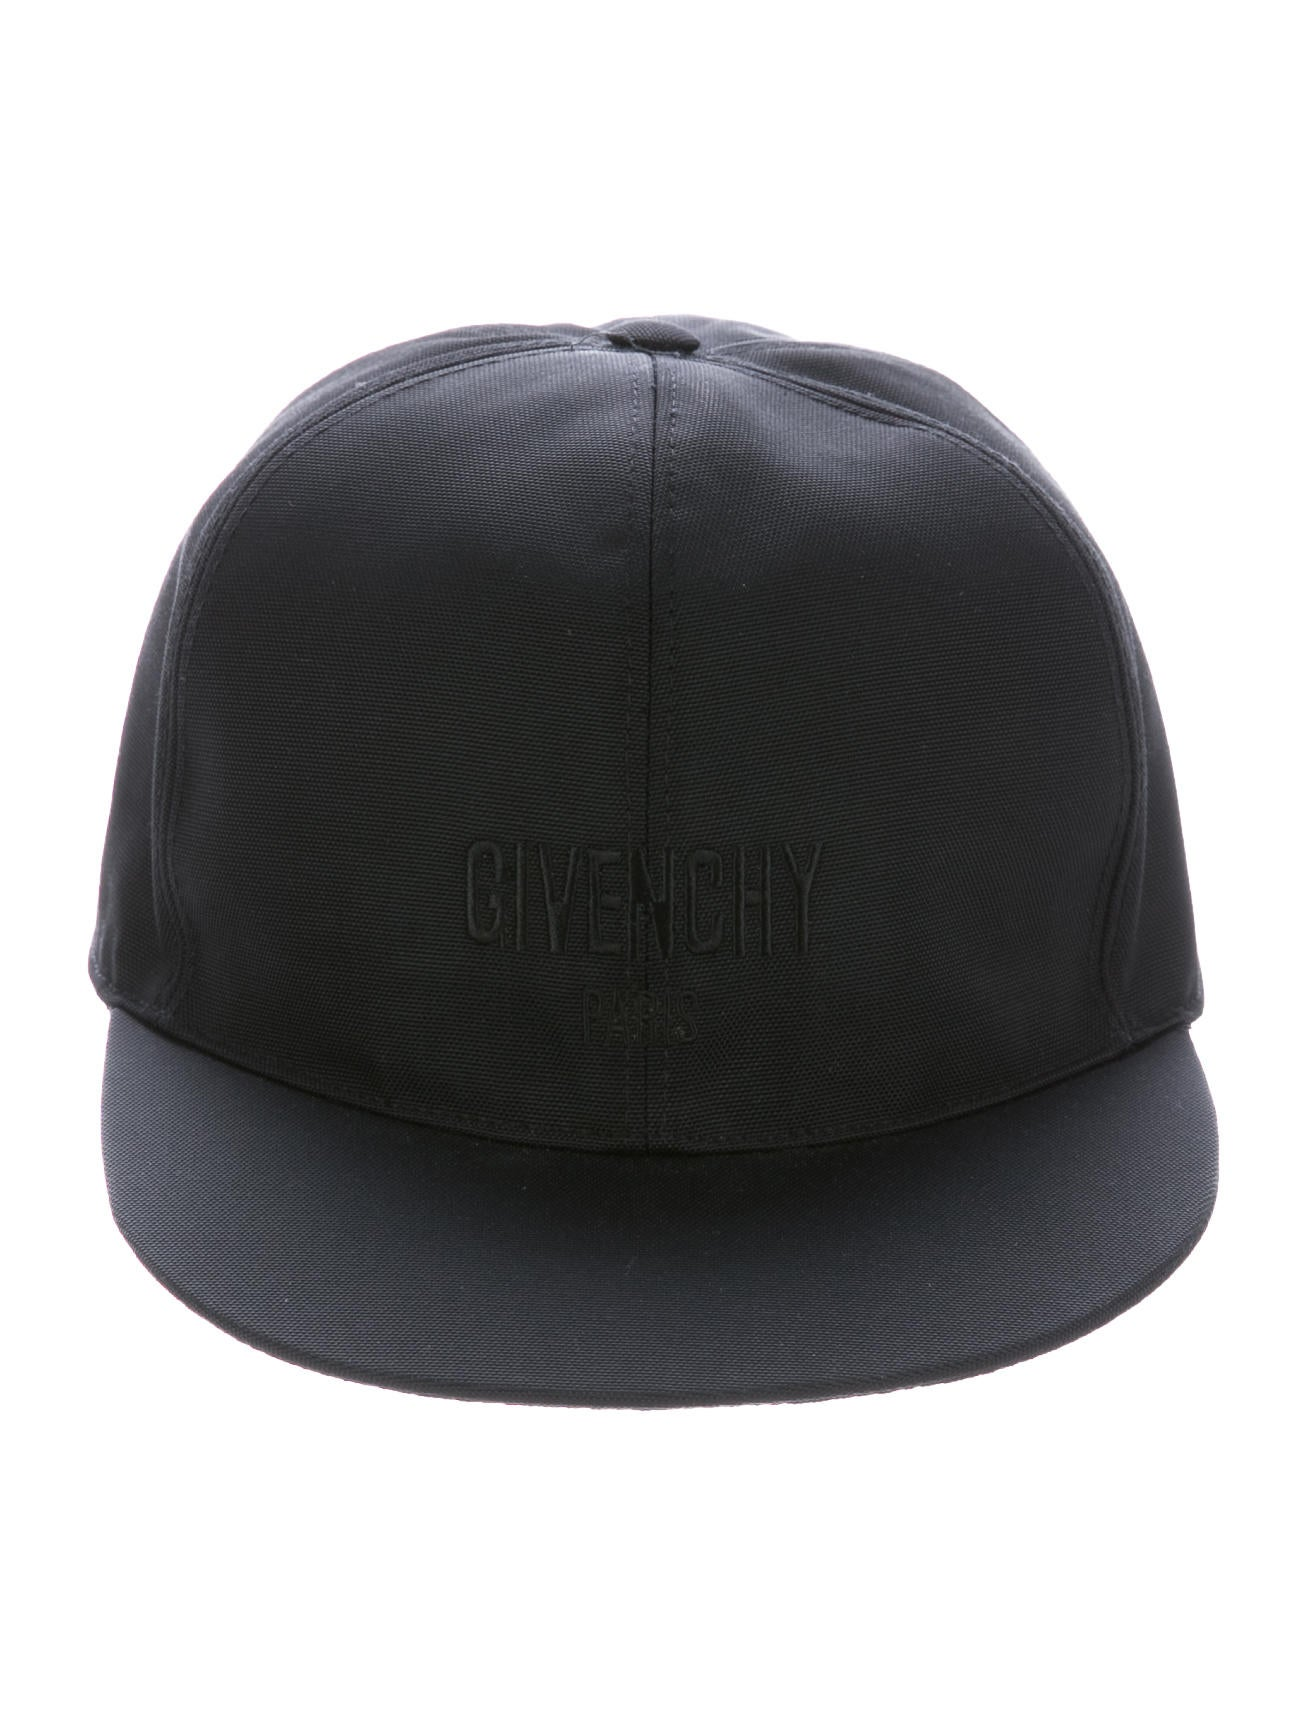 Givenchy logo embroidered hat w tags accessories